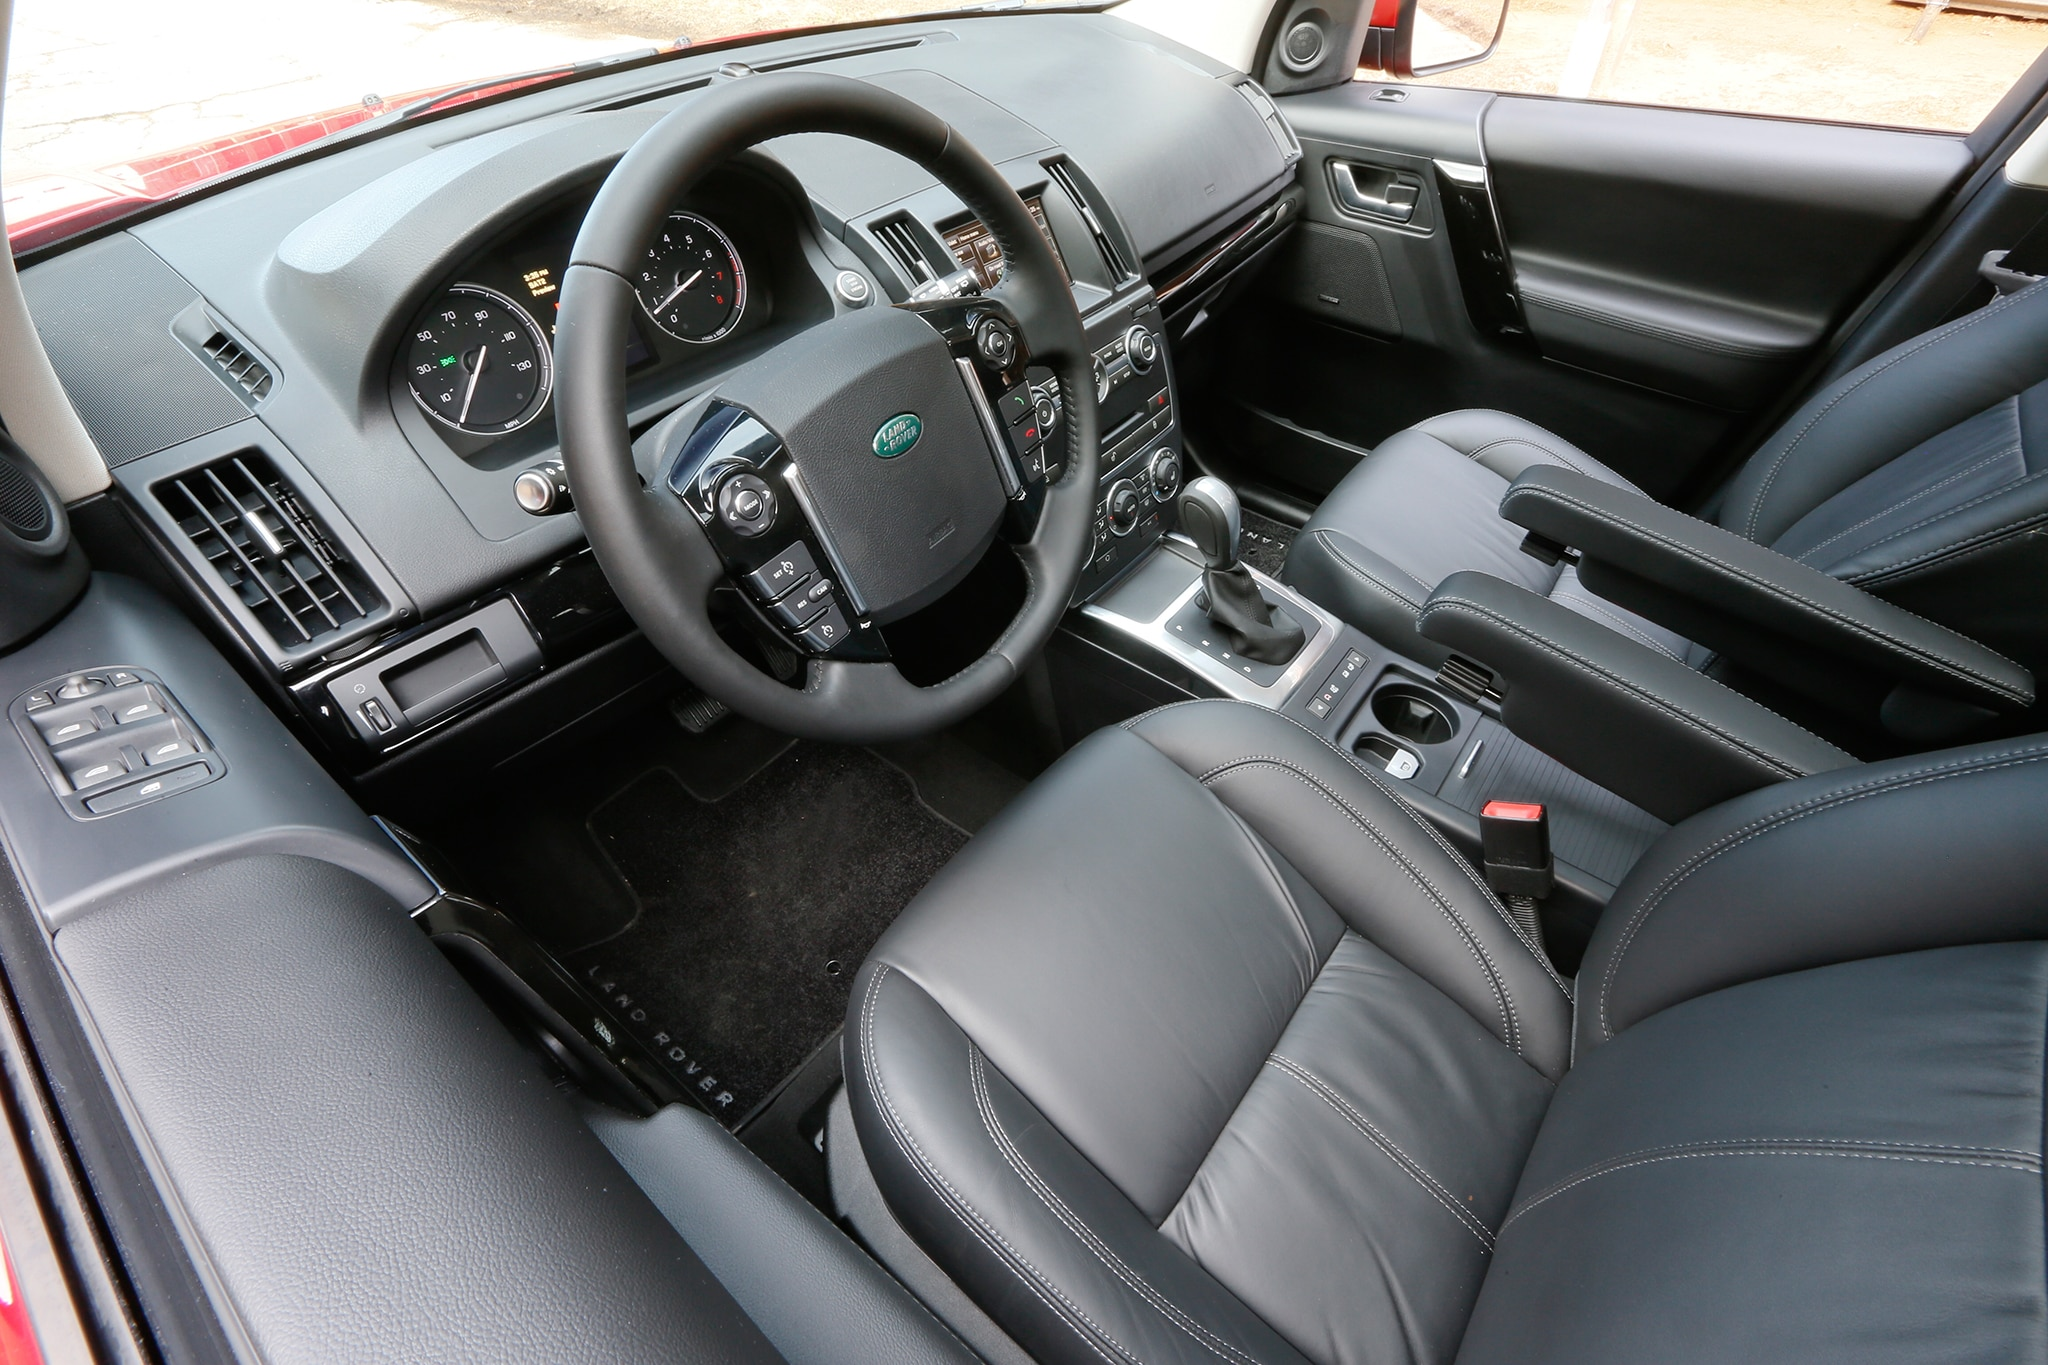 http://st.automobilemag.com/uploads/sites/10/2015/09/2013-land-rover-LR2-drivers-side-interior-1.jpg